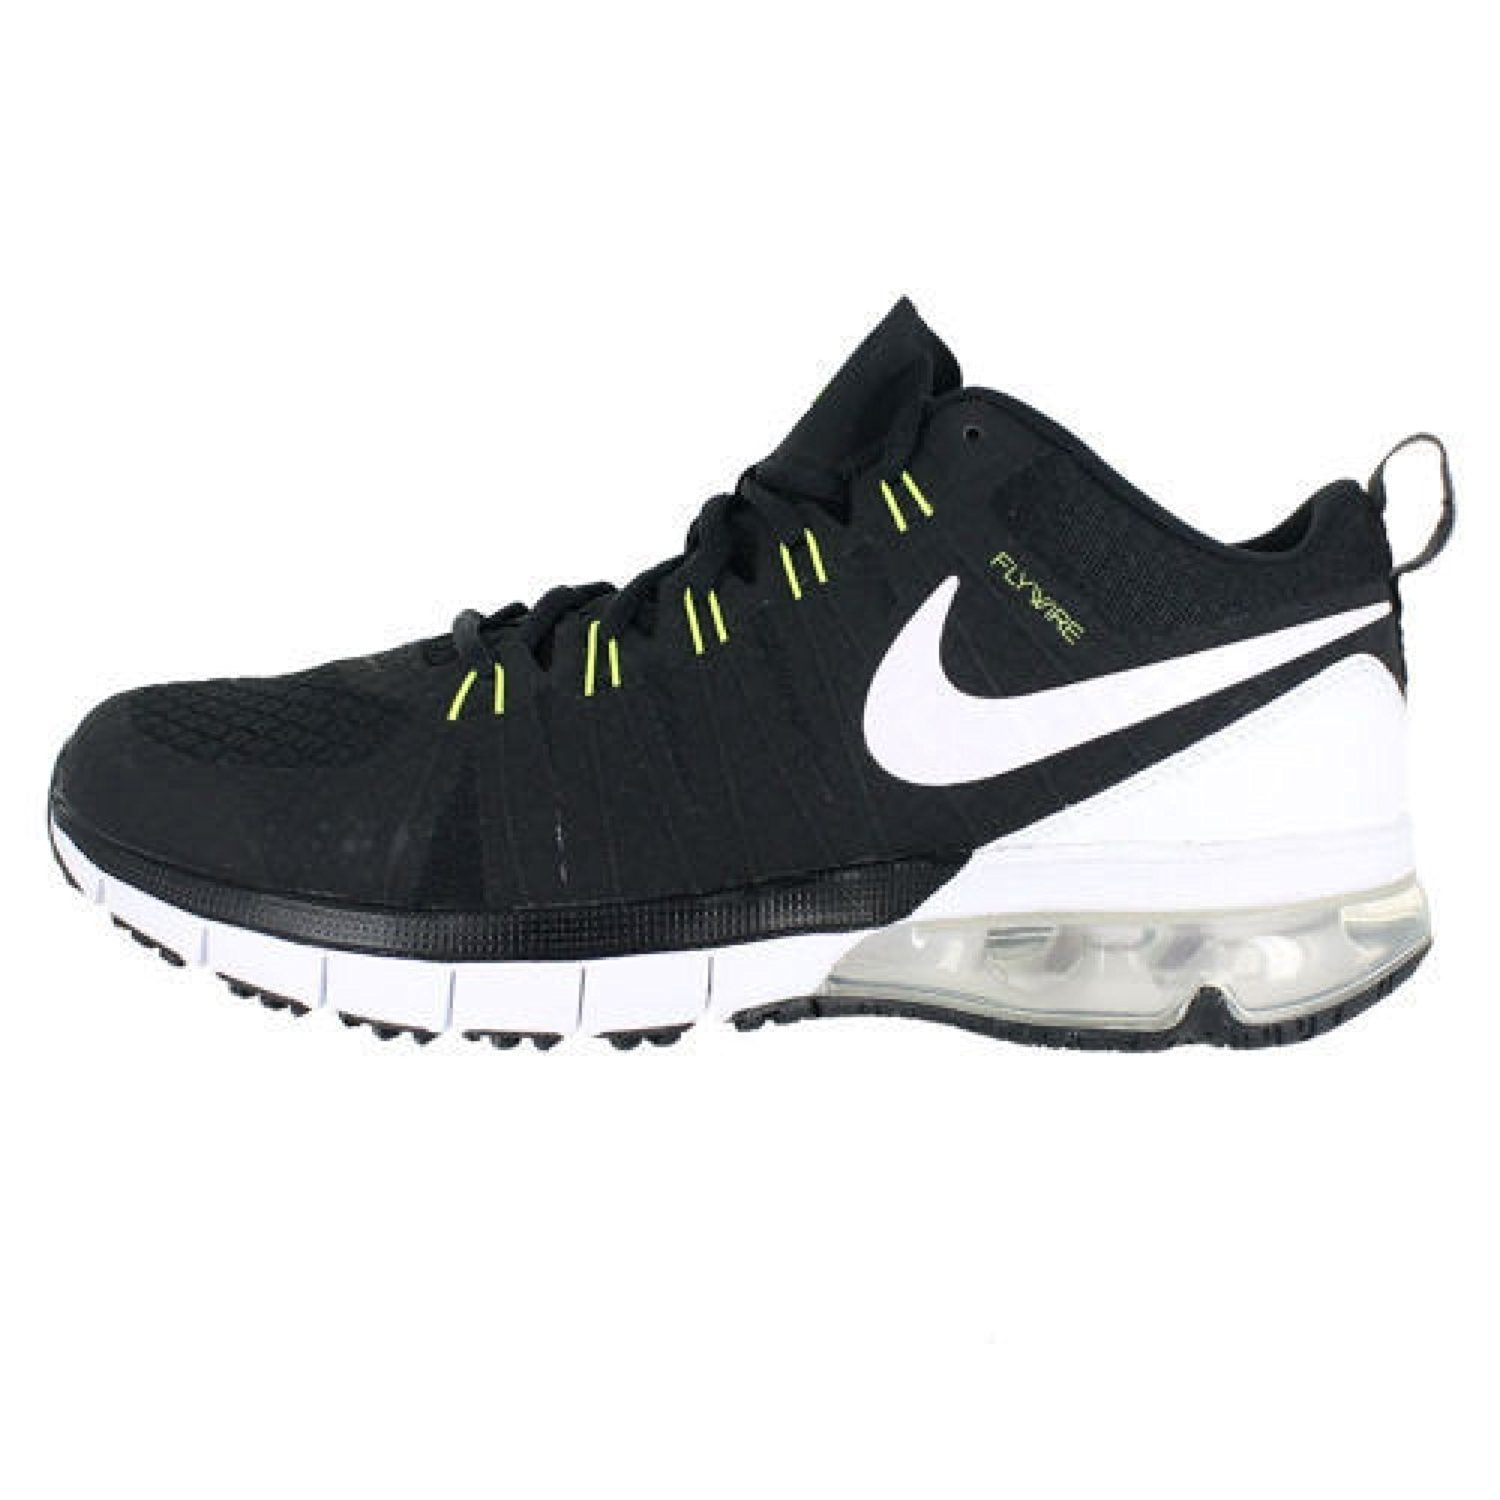 a46c4a6122d7 Get Quotations · Nike 723972-017 Air Max TR180 Training Shoes Black White  Size Mens 7.5